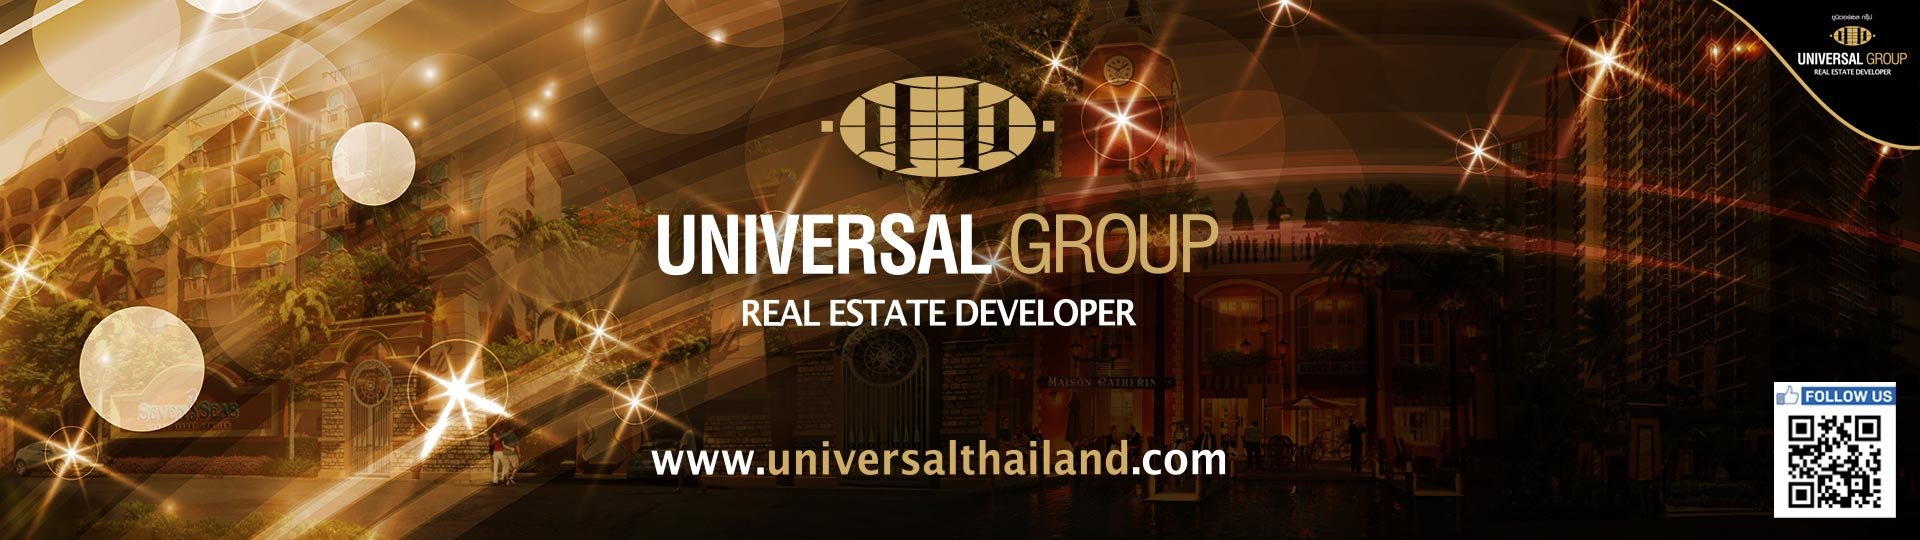 Universal Group Thailand 2017